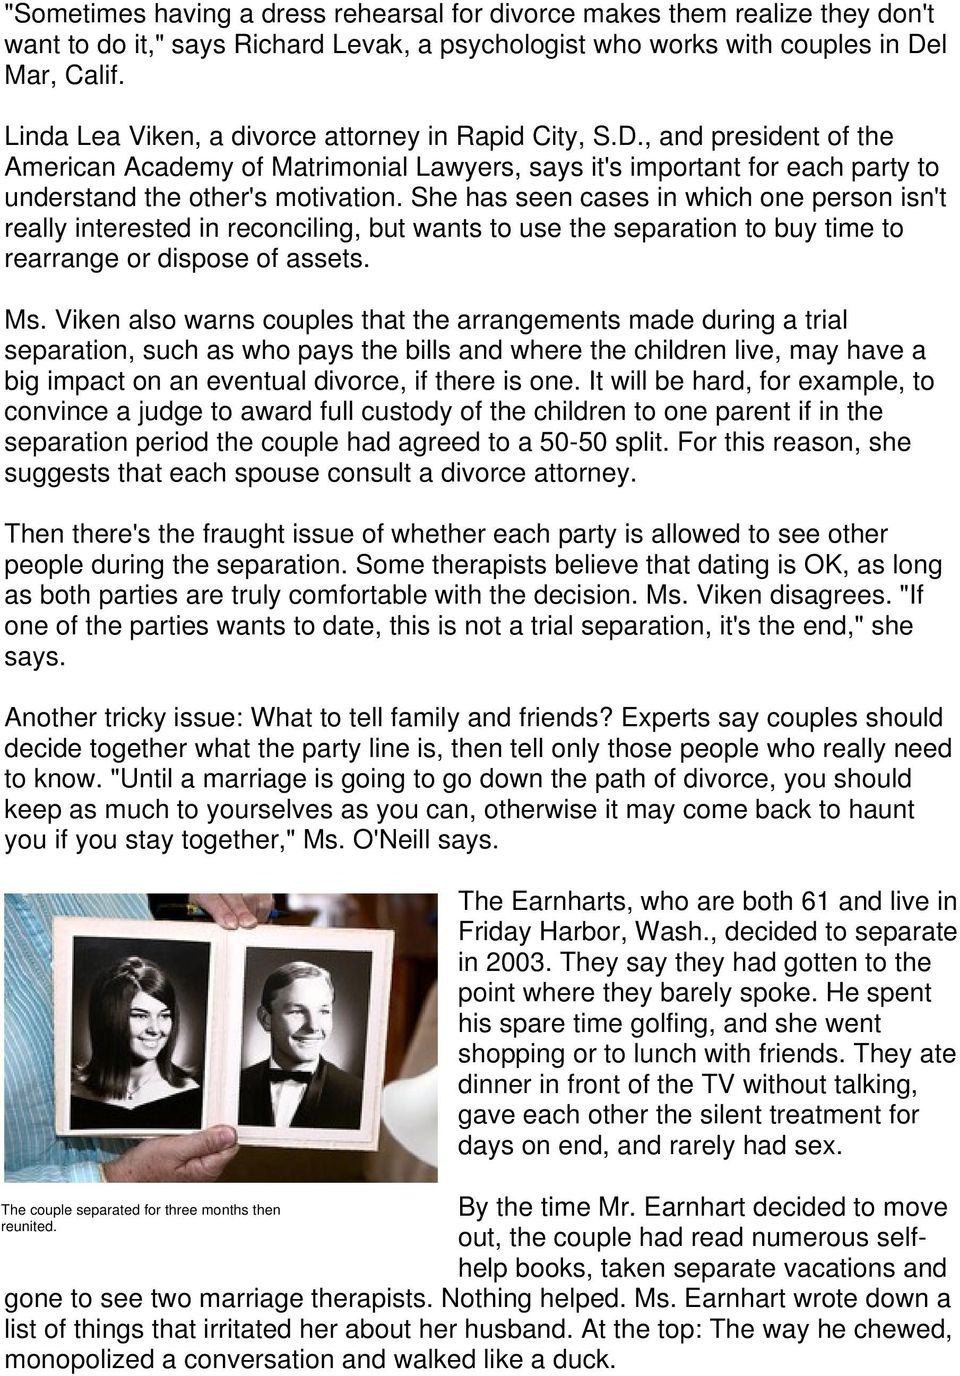 To Save a Marriage, Split Up? - PDF